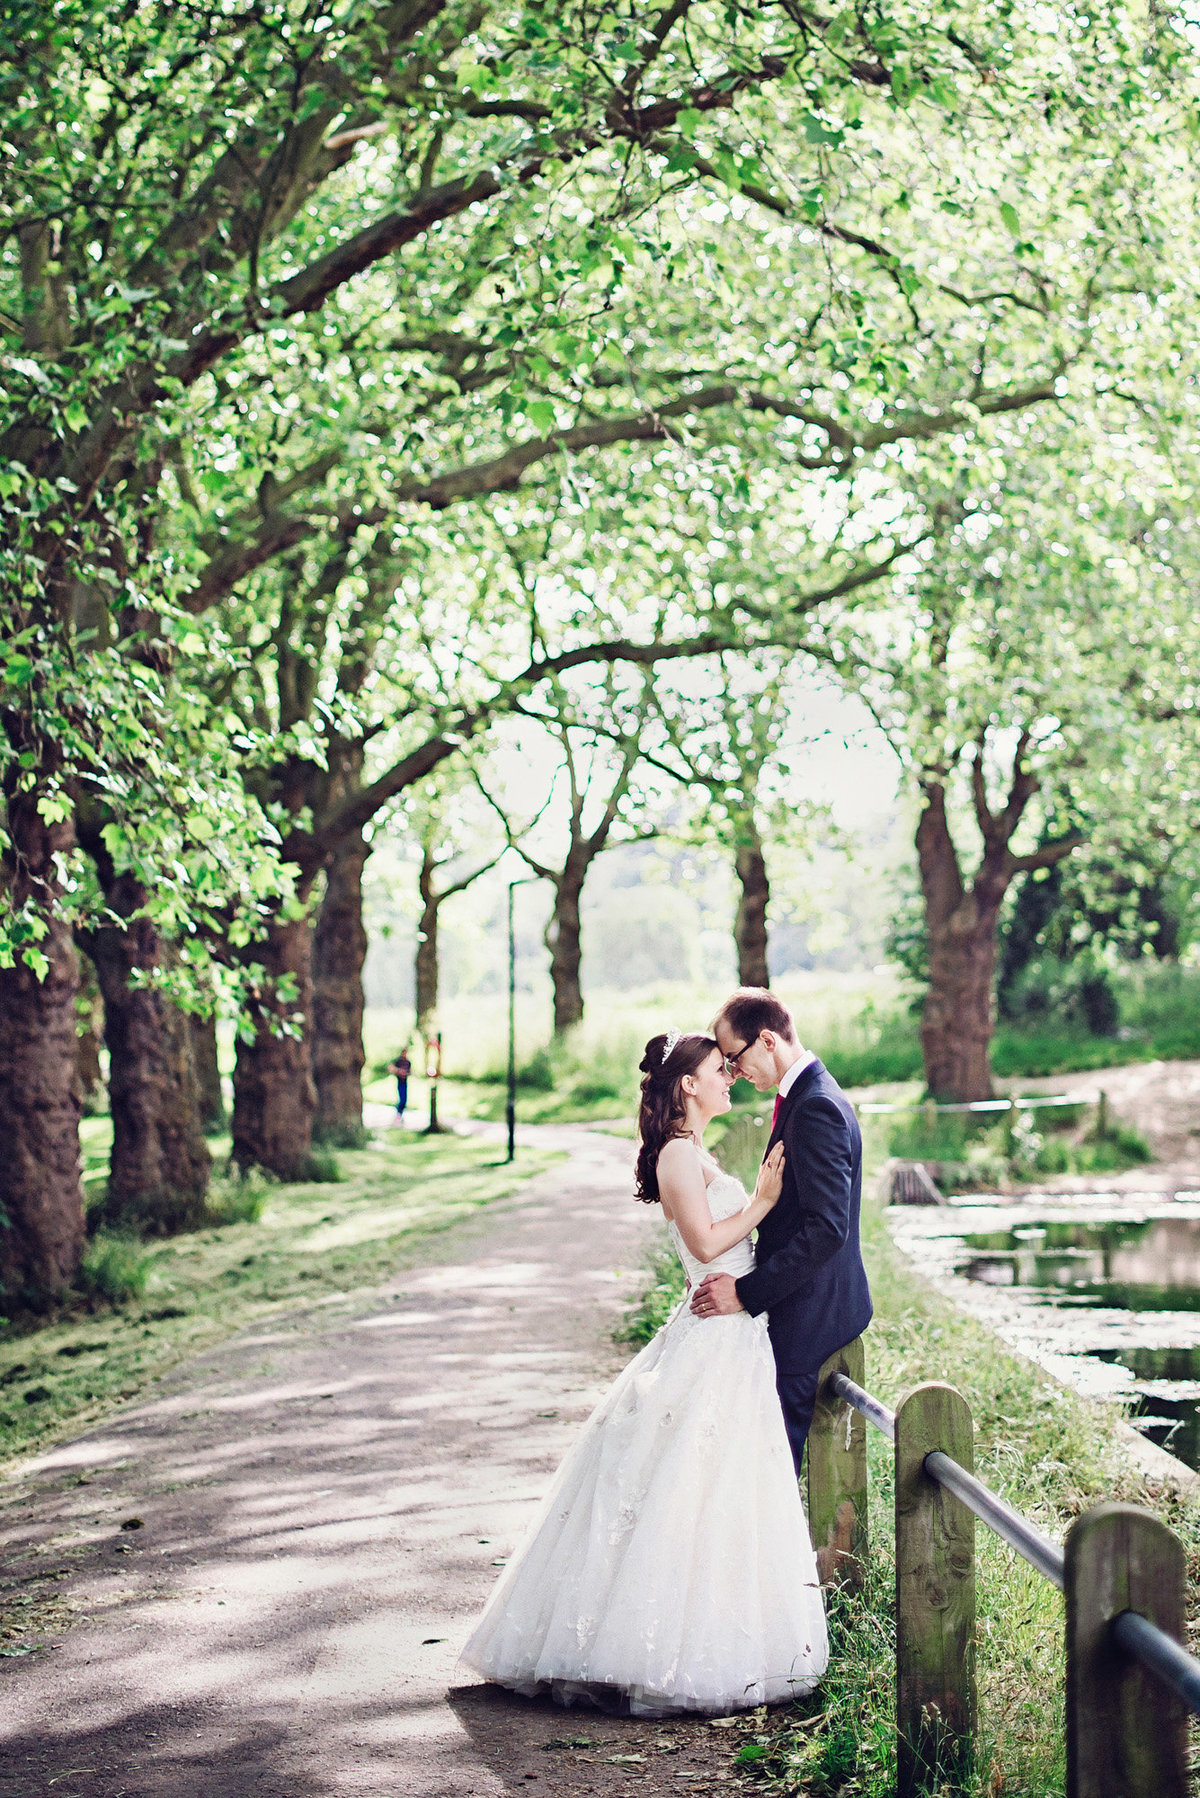 Wedding photography hertfordshire buckinghamshire london uk (38 of 126)